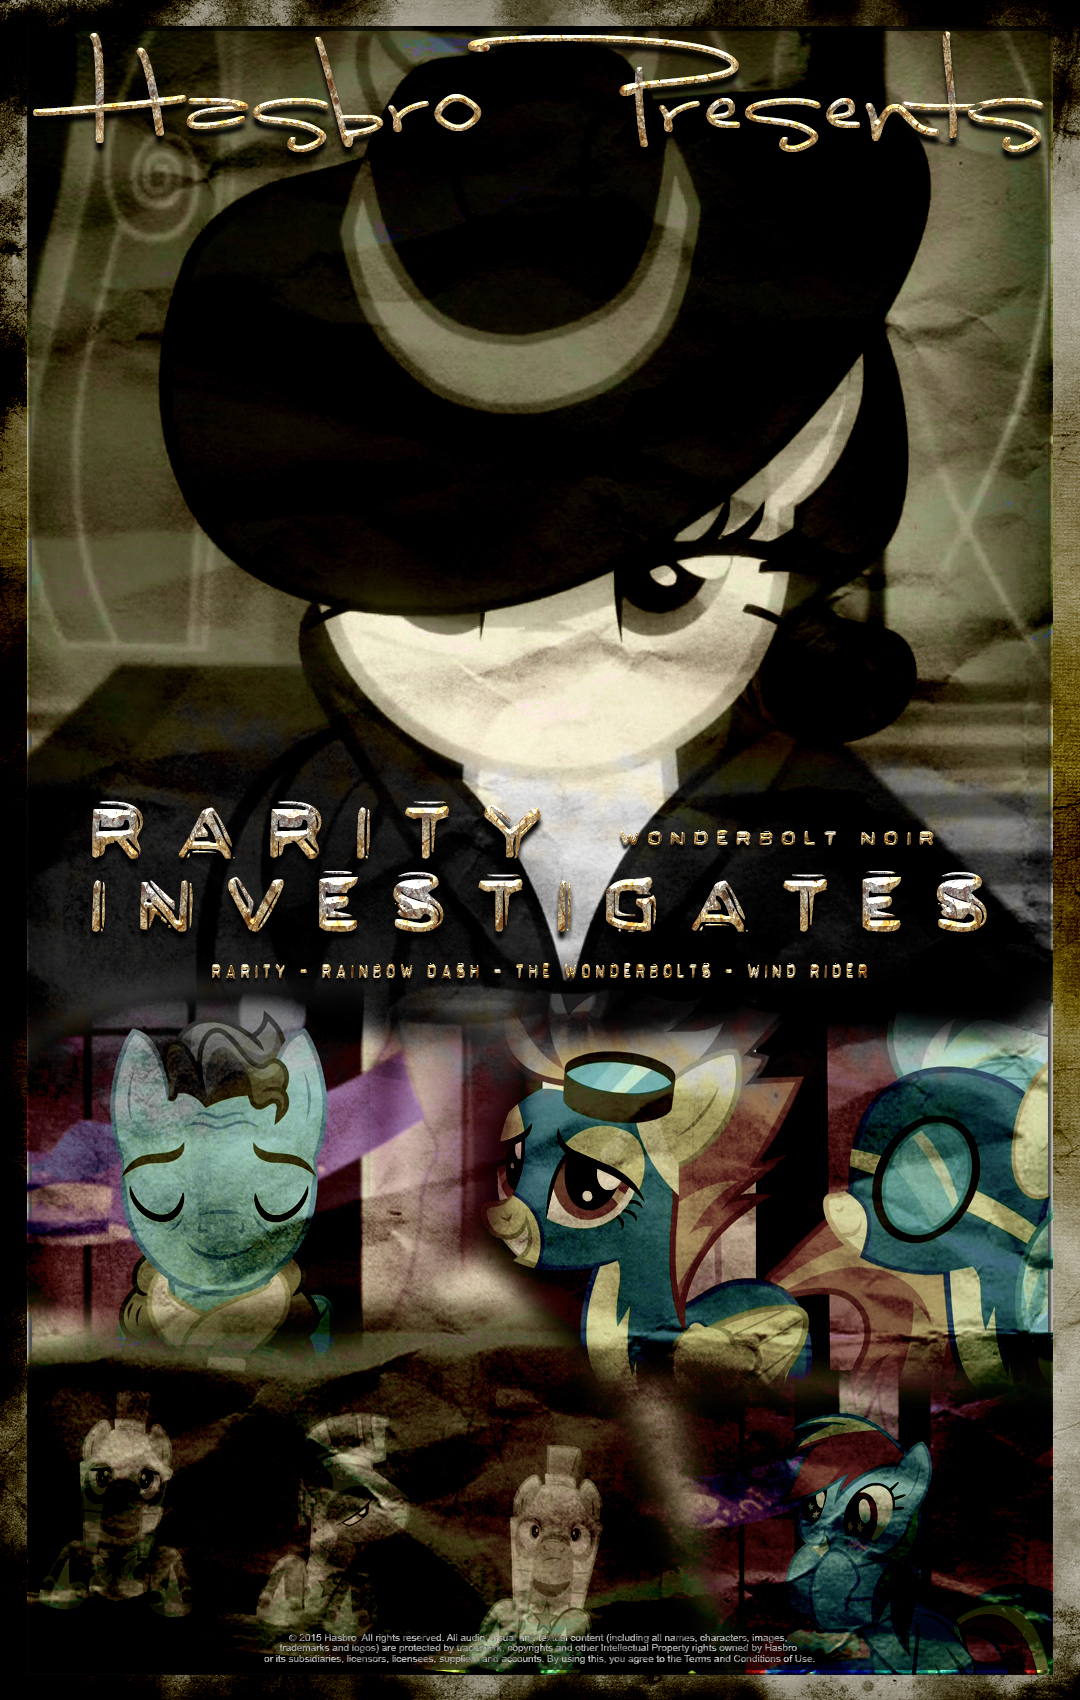 mlp___rarity_investigates___movie_poster_by_pims1978-d9a68dp.jpg